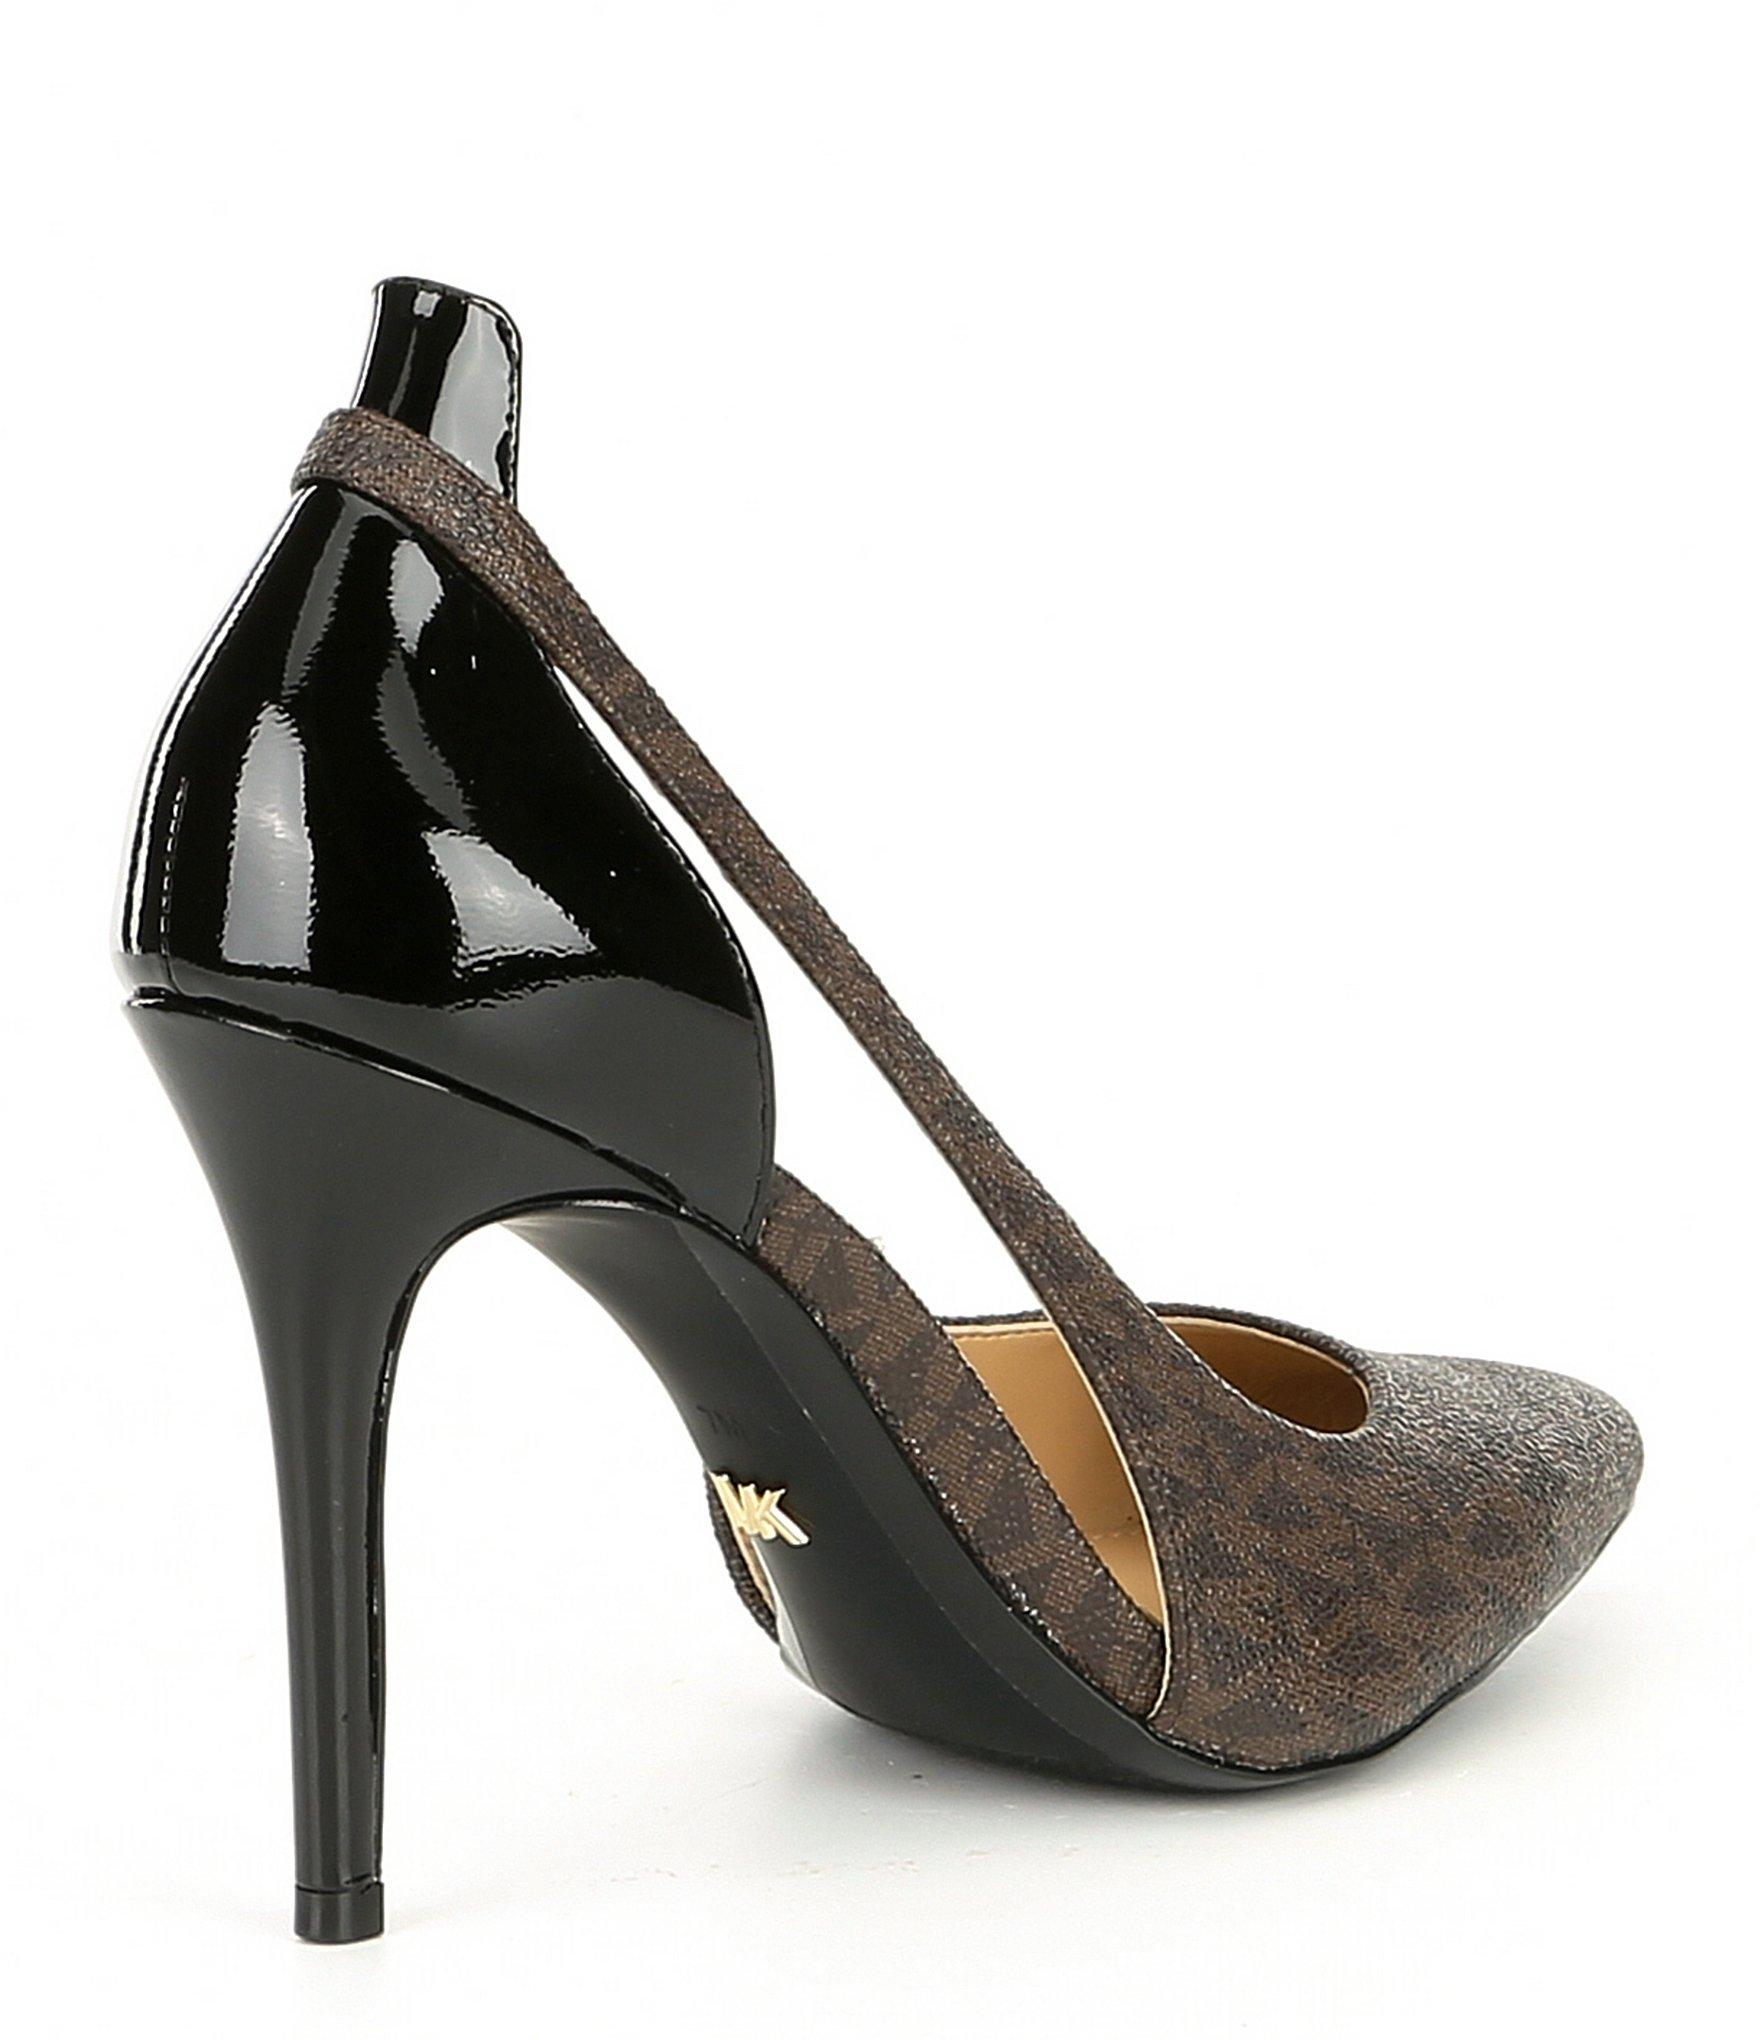 84d995d41904 MICHAEL Michael Kors - Multicolor Cersei Mk Logo Patent Leather Pumps -  Lyst. View fullscreen